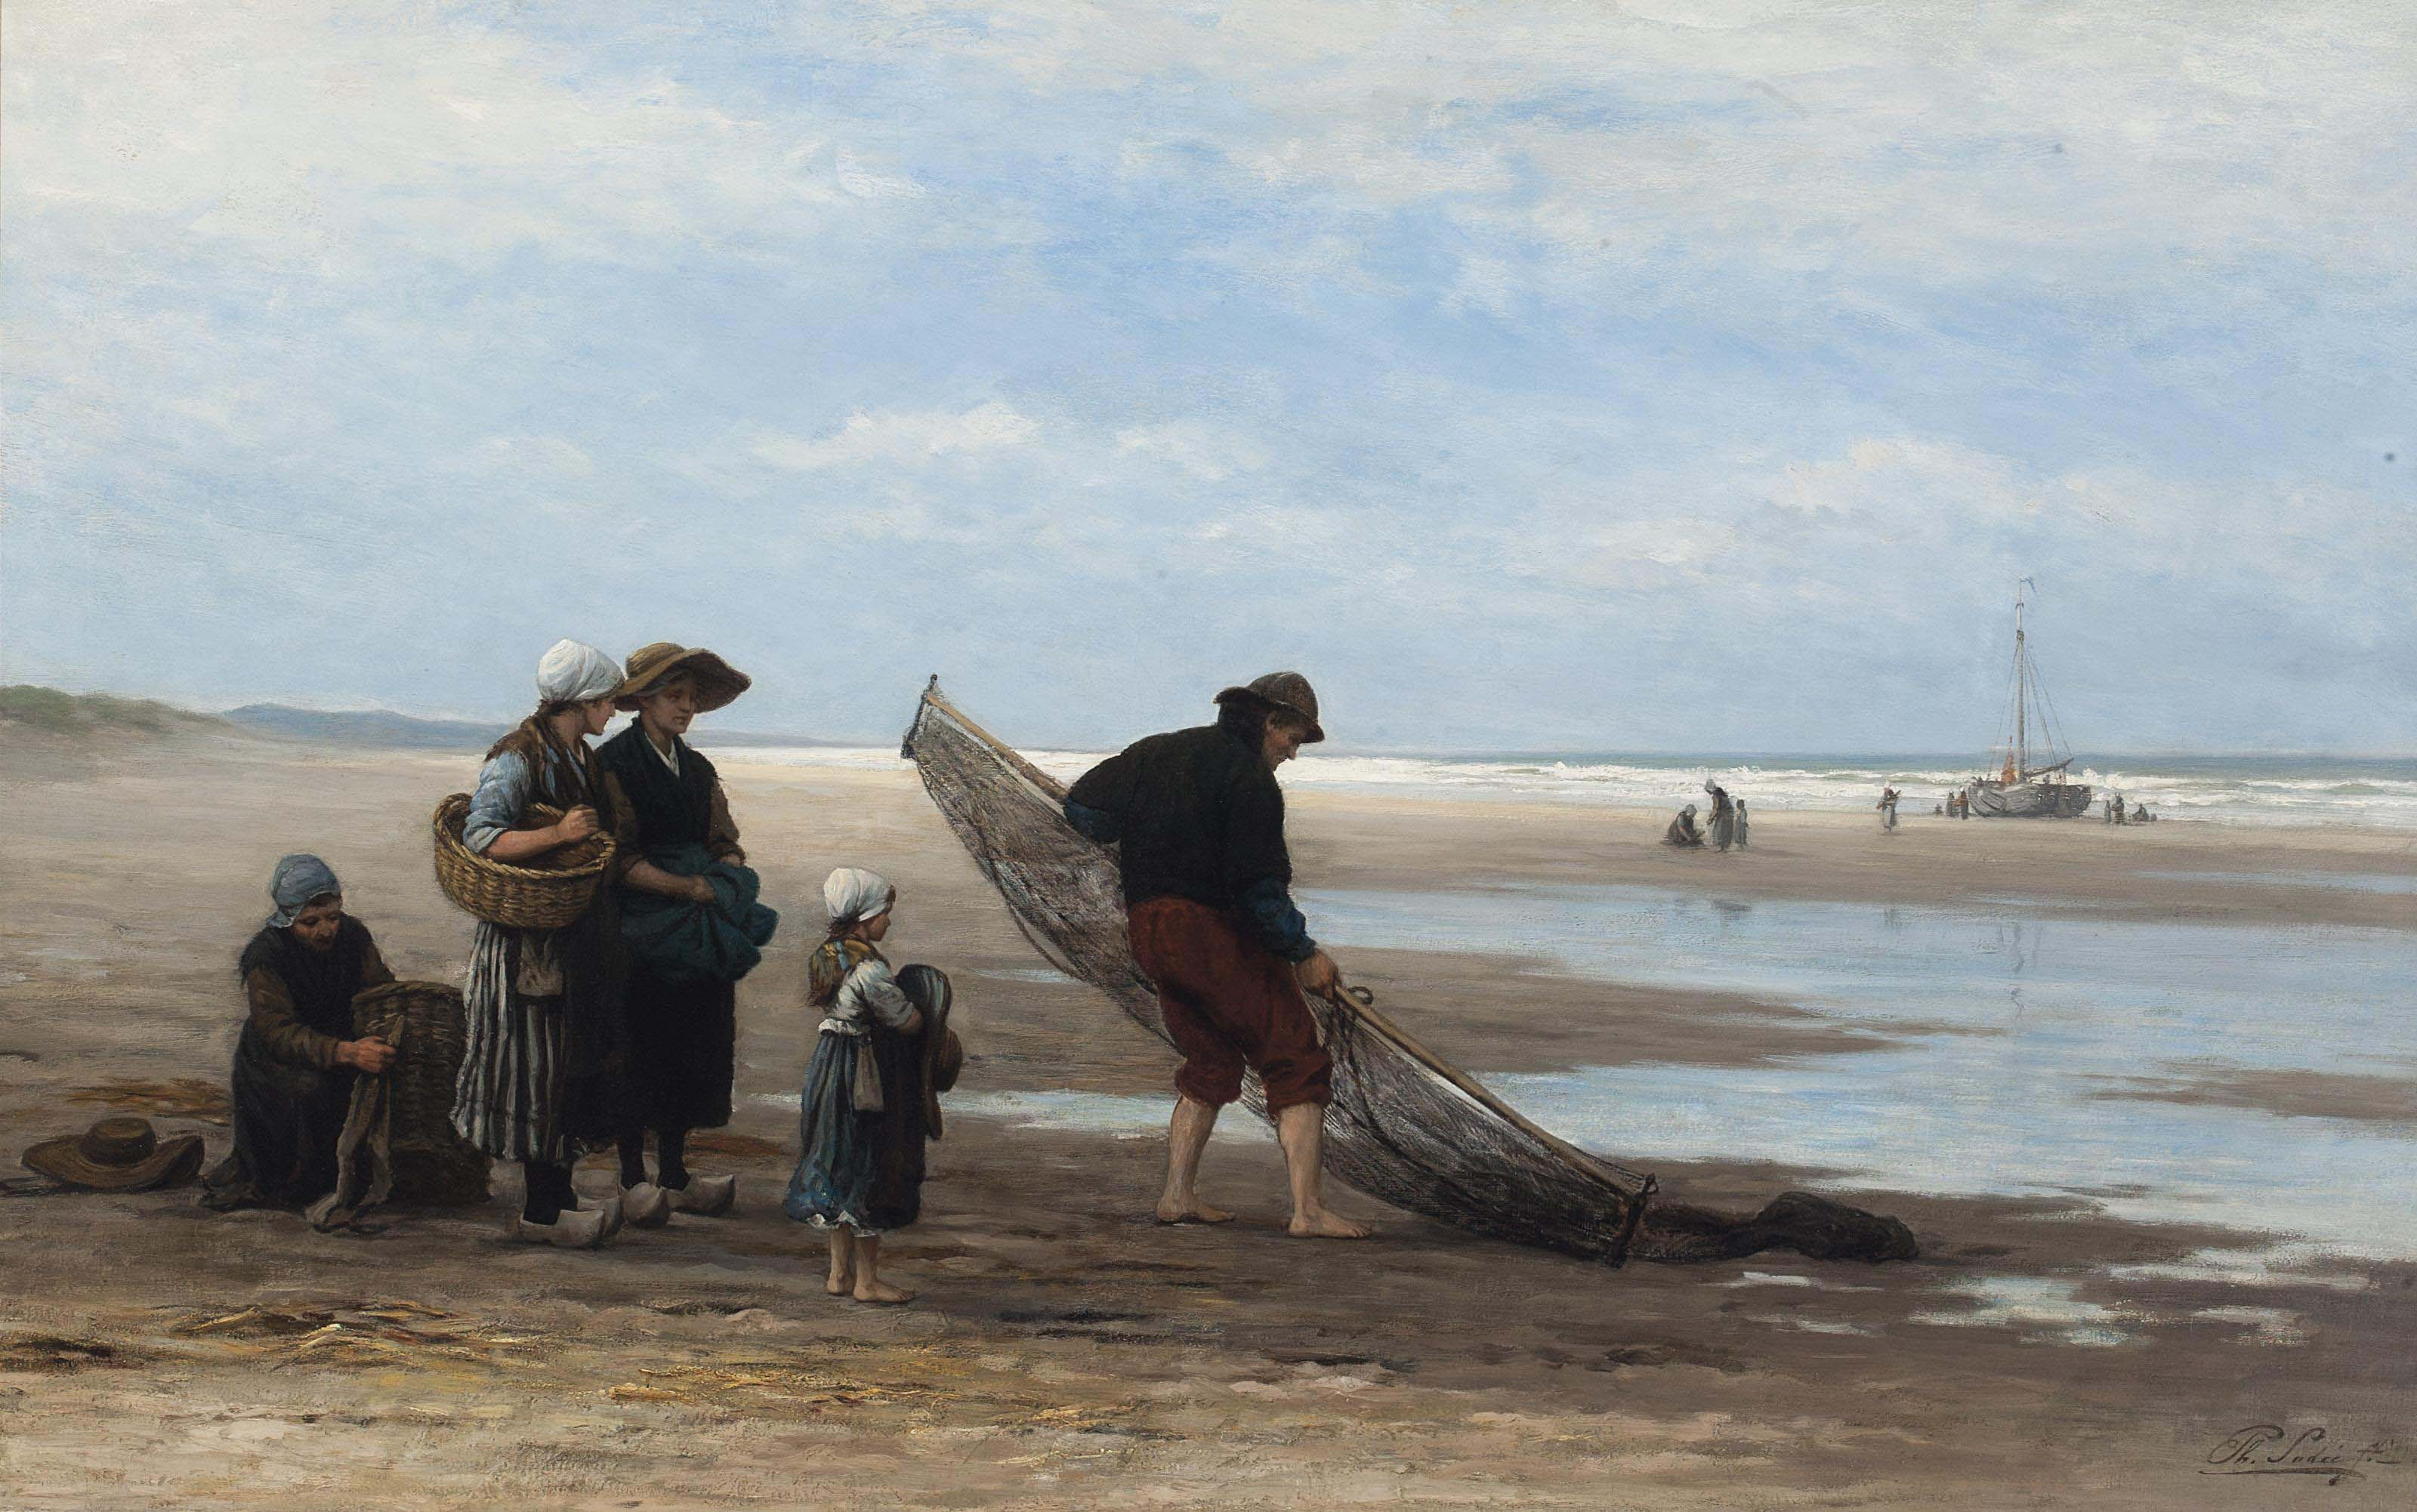 Shrimpers on the beach at low tide, Scheveningen